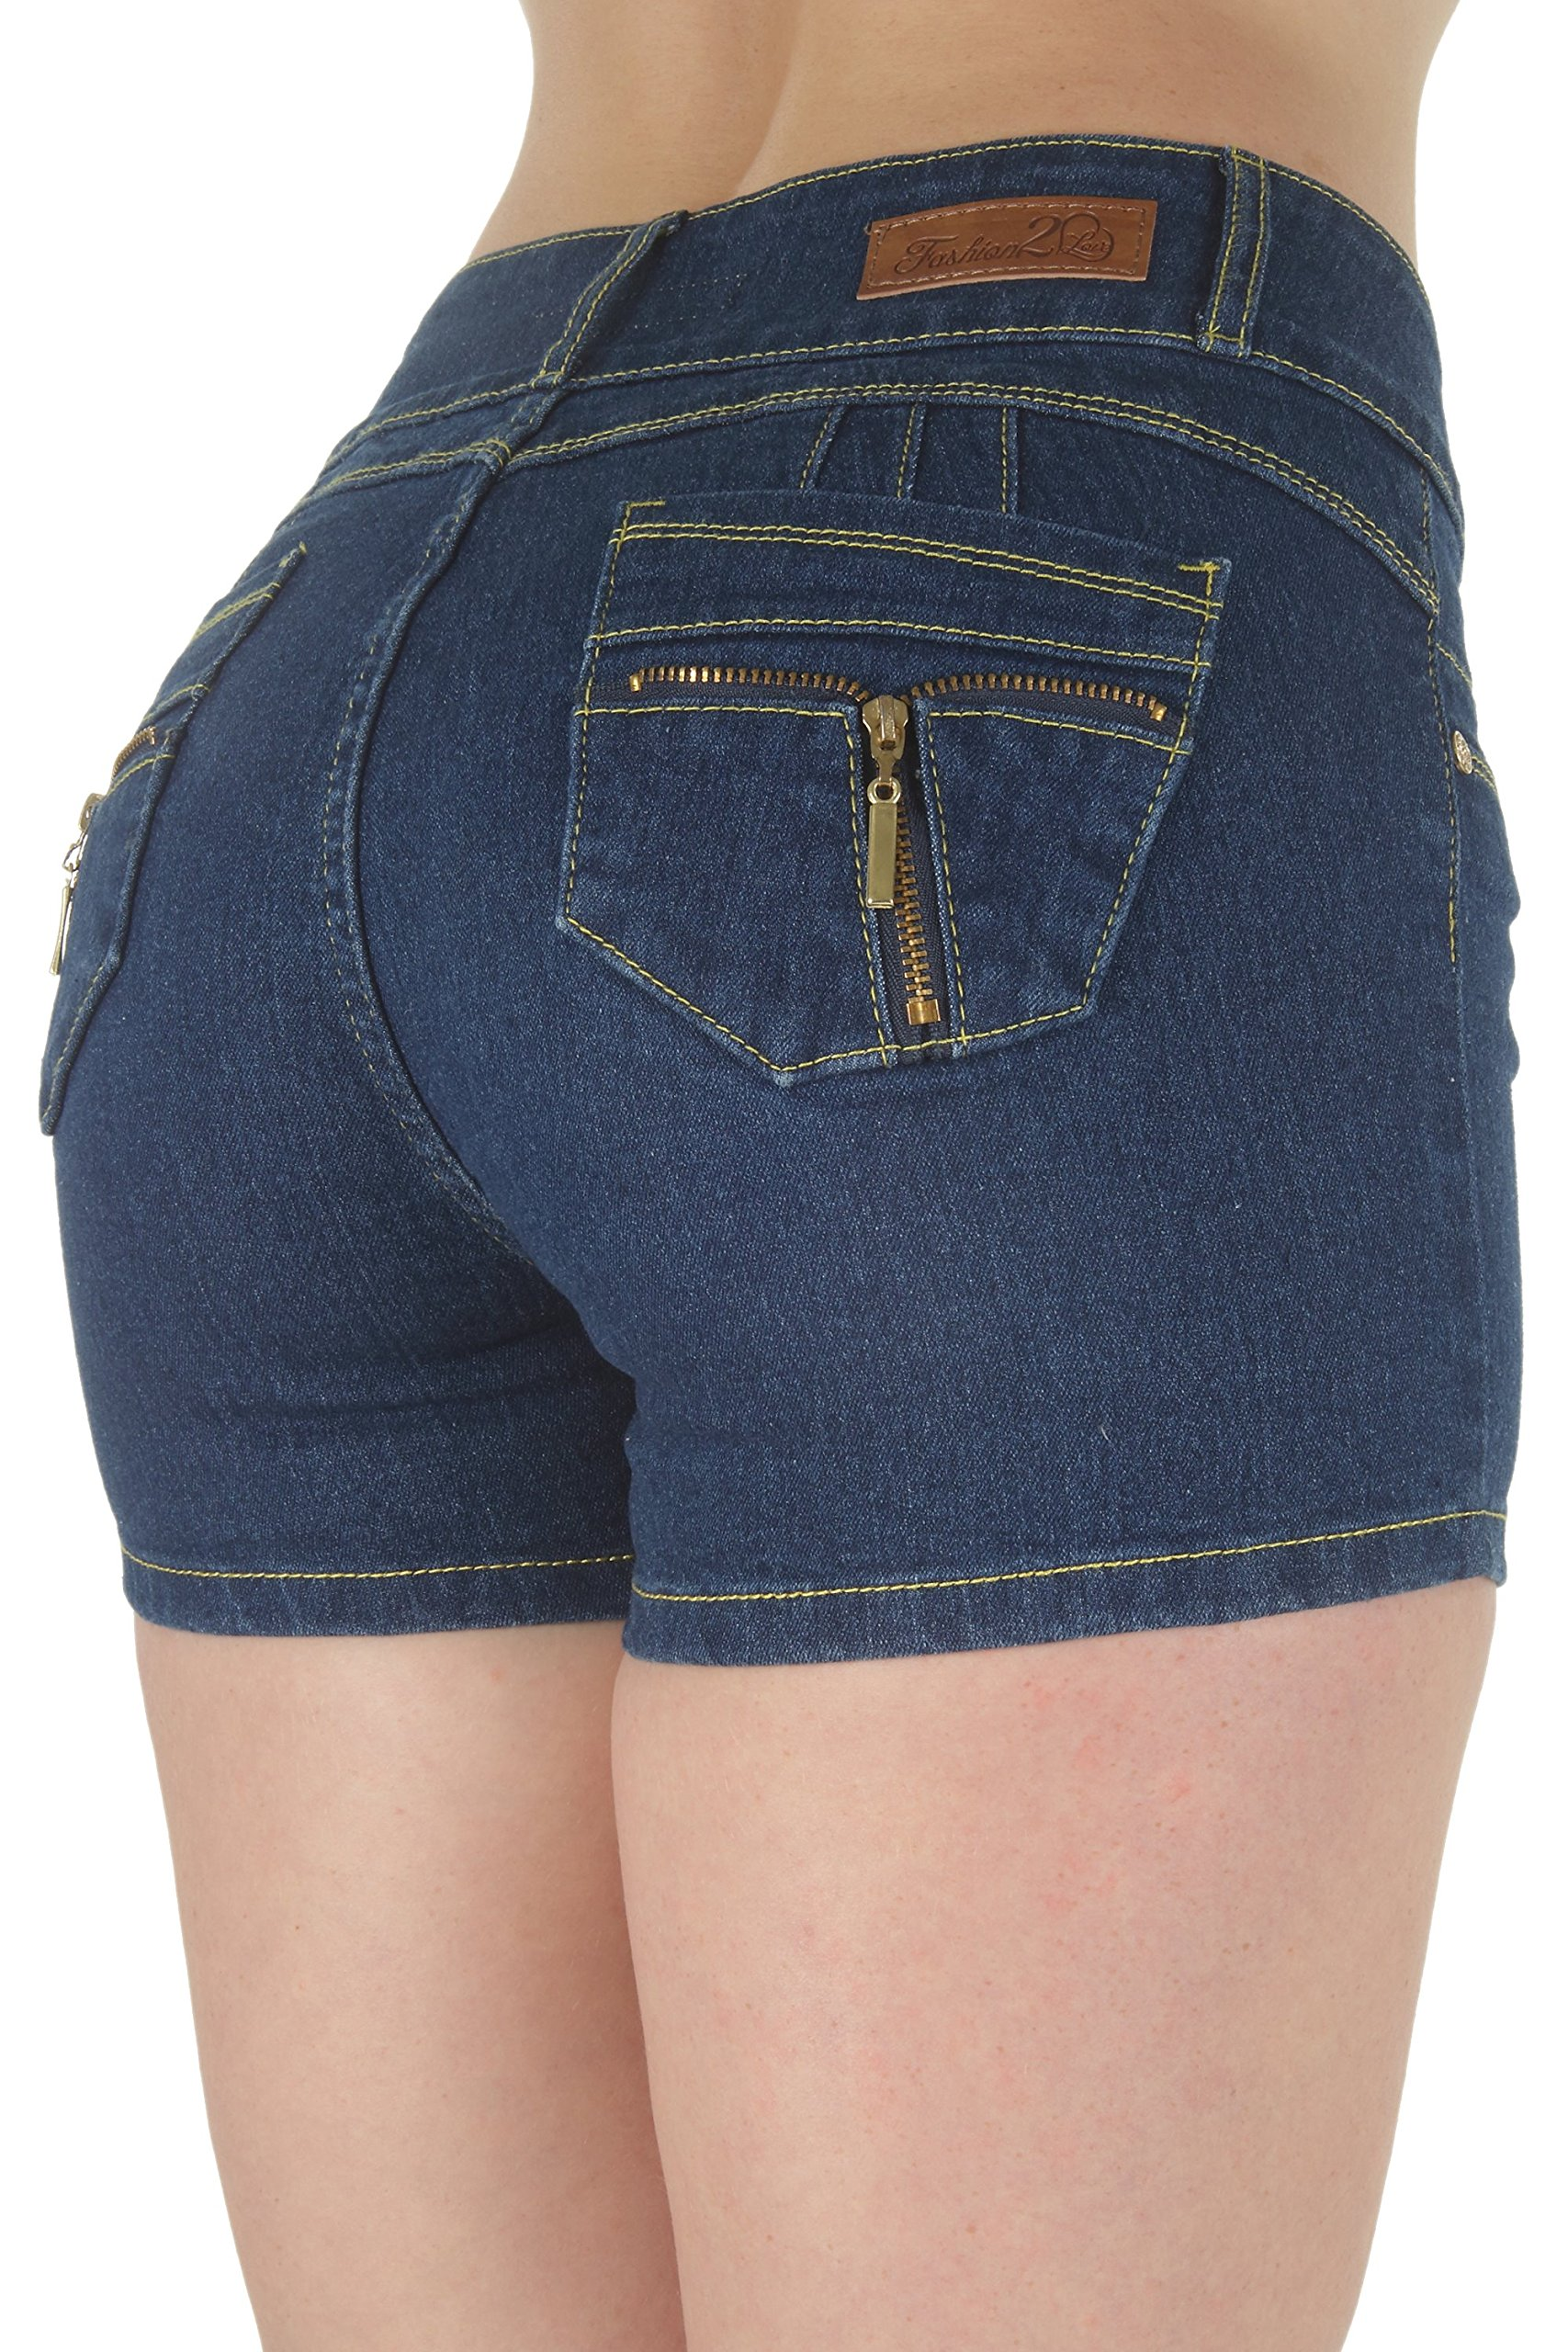 Fashion2Love M947SH-P – Plus Size, Butt Lifting, Levanta Cola, Mid Waist Denim Booty Shorts in Navy Size 16